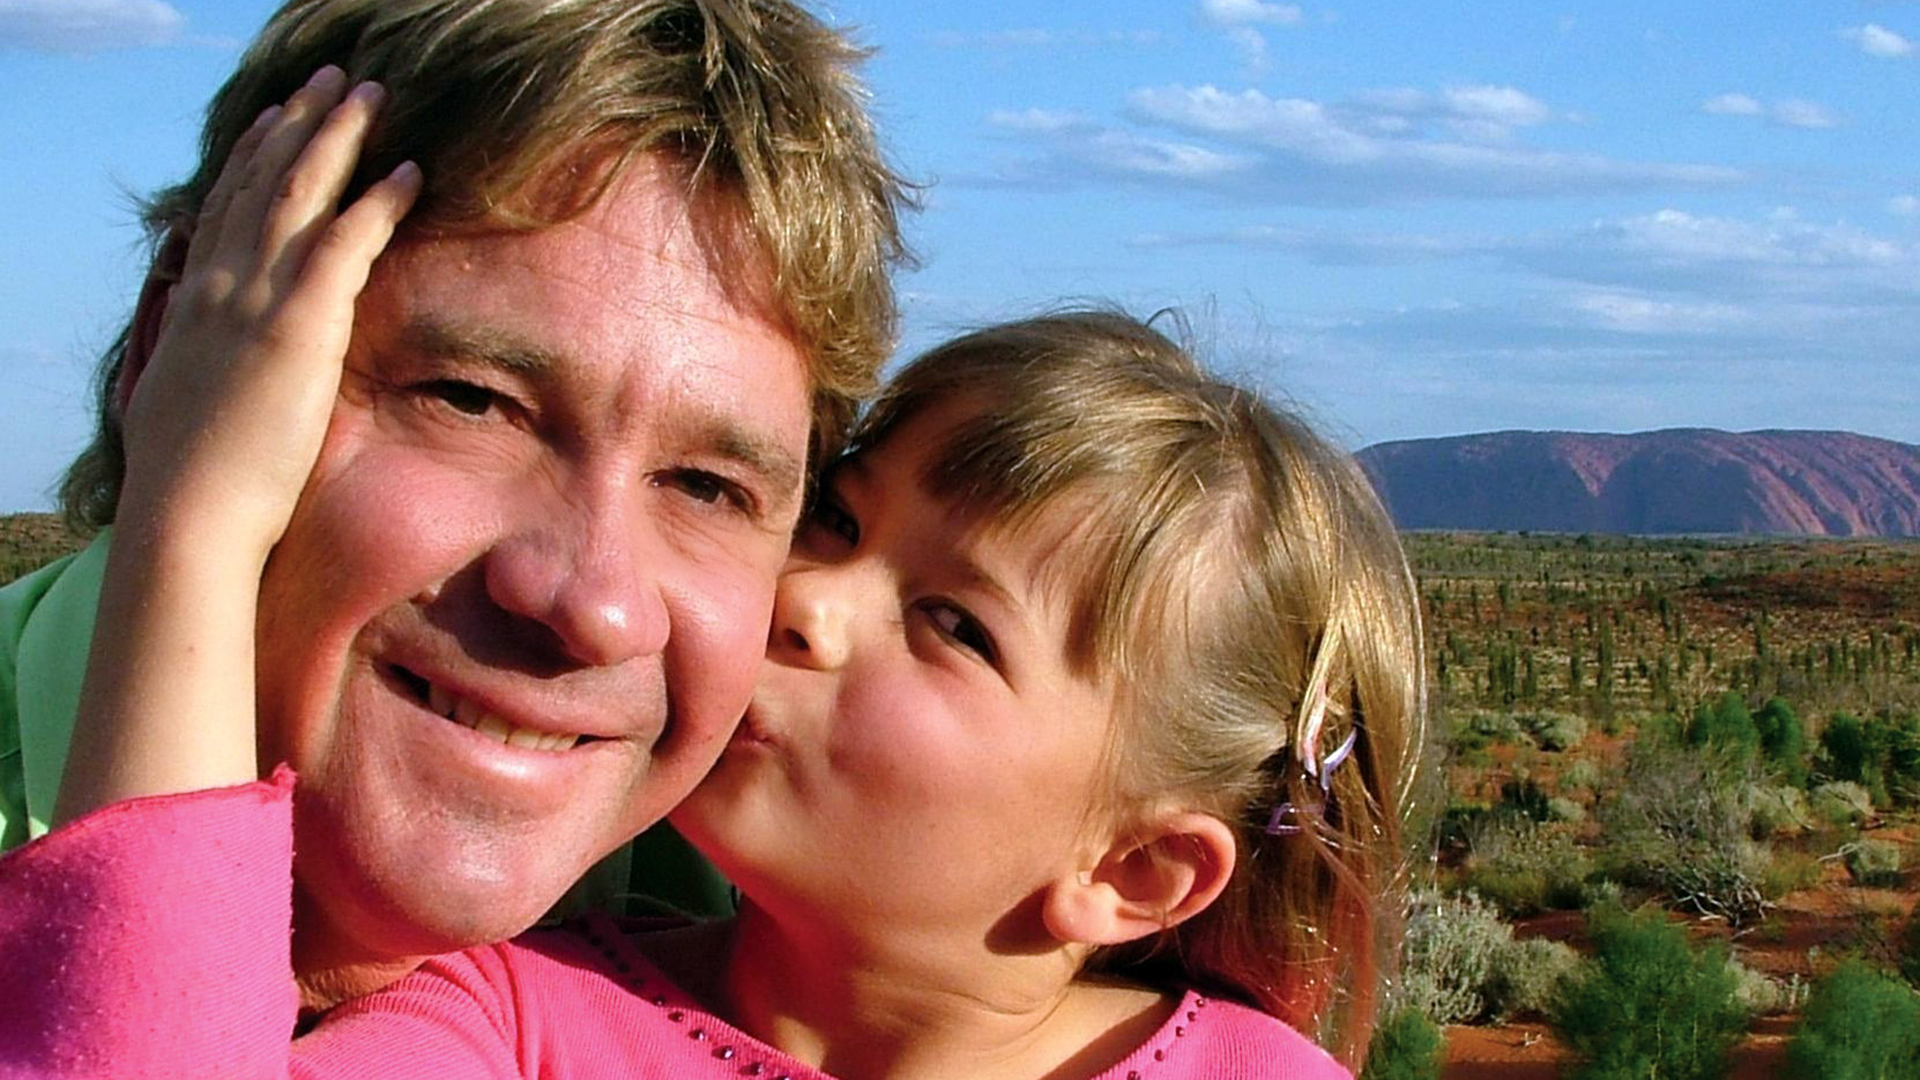 Steve Irwin poses with his daughter Bindi Irwin October 2, 2005 in Uluru, Australia.